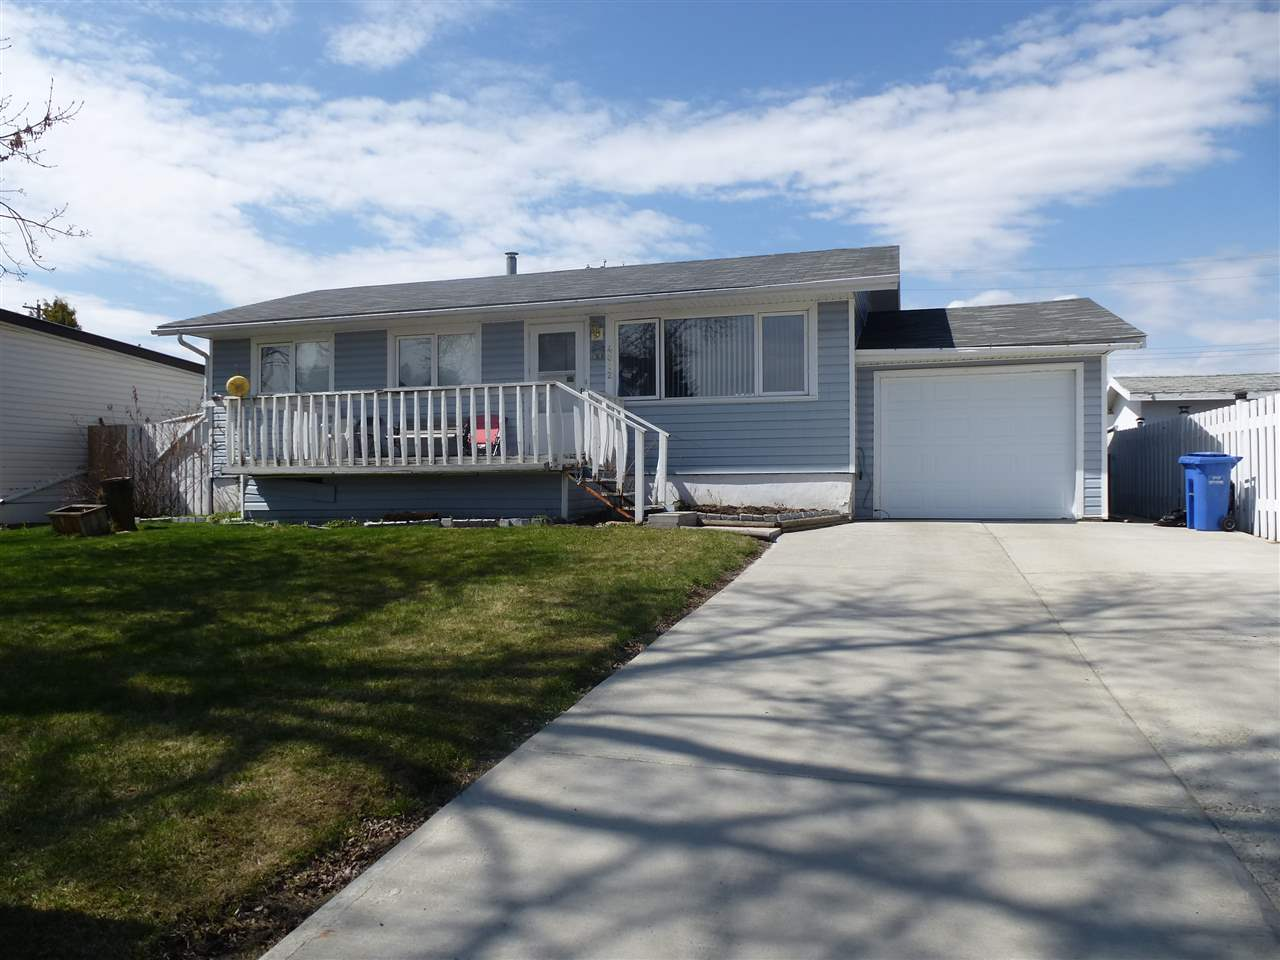 Main Photo: 4012 55 Street: Wetaskiwin House for sale : MLS® # E4054430